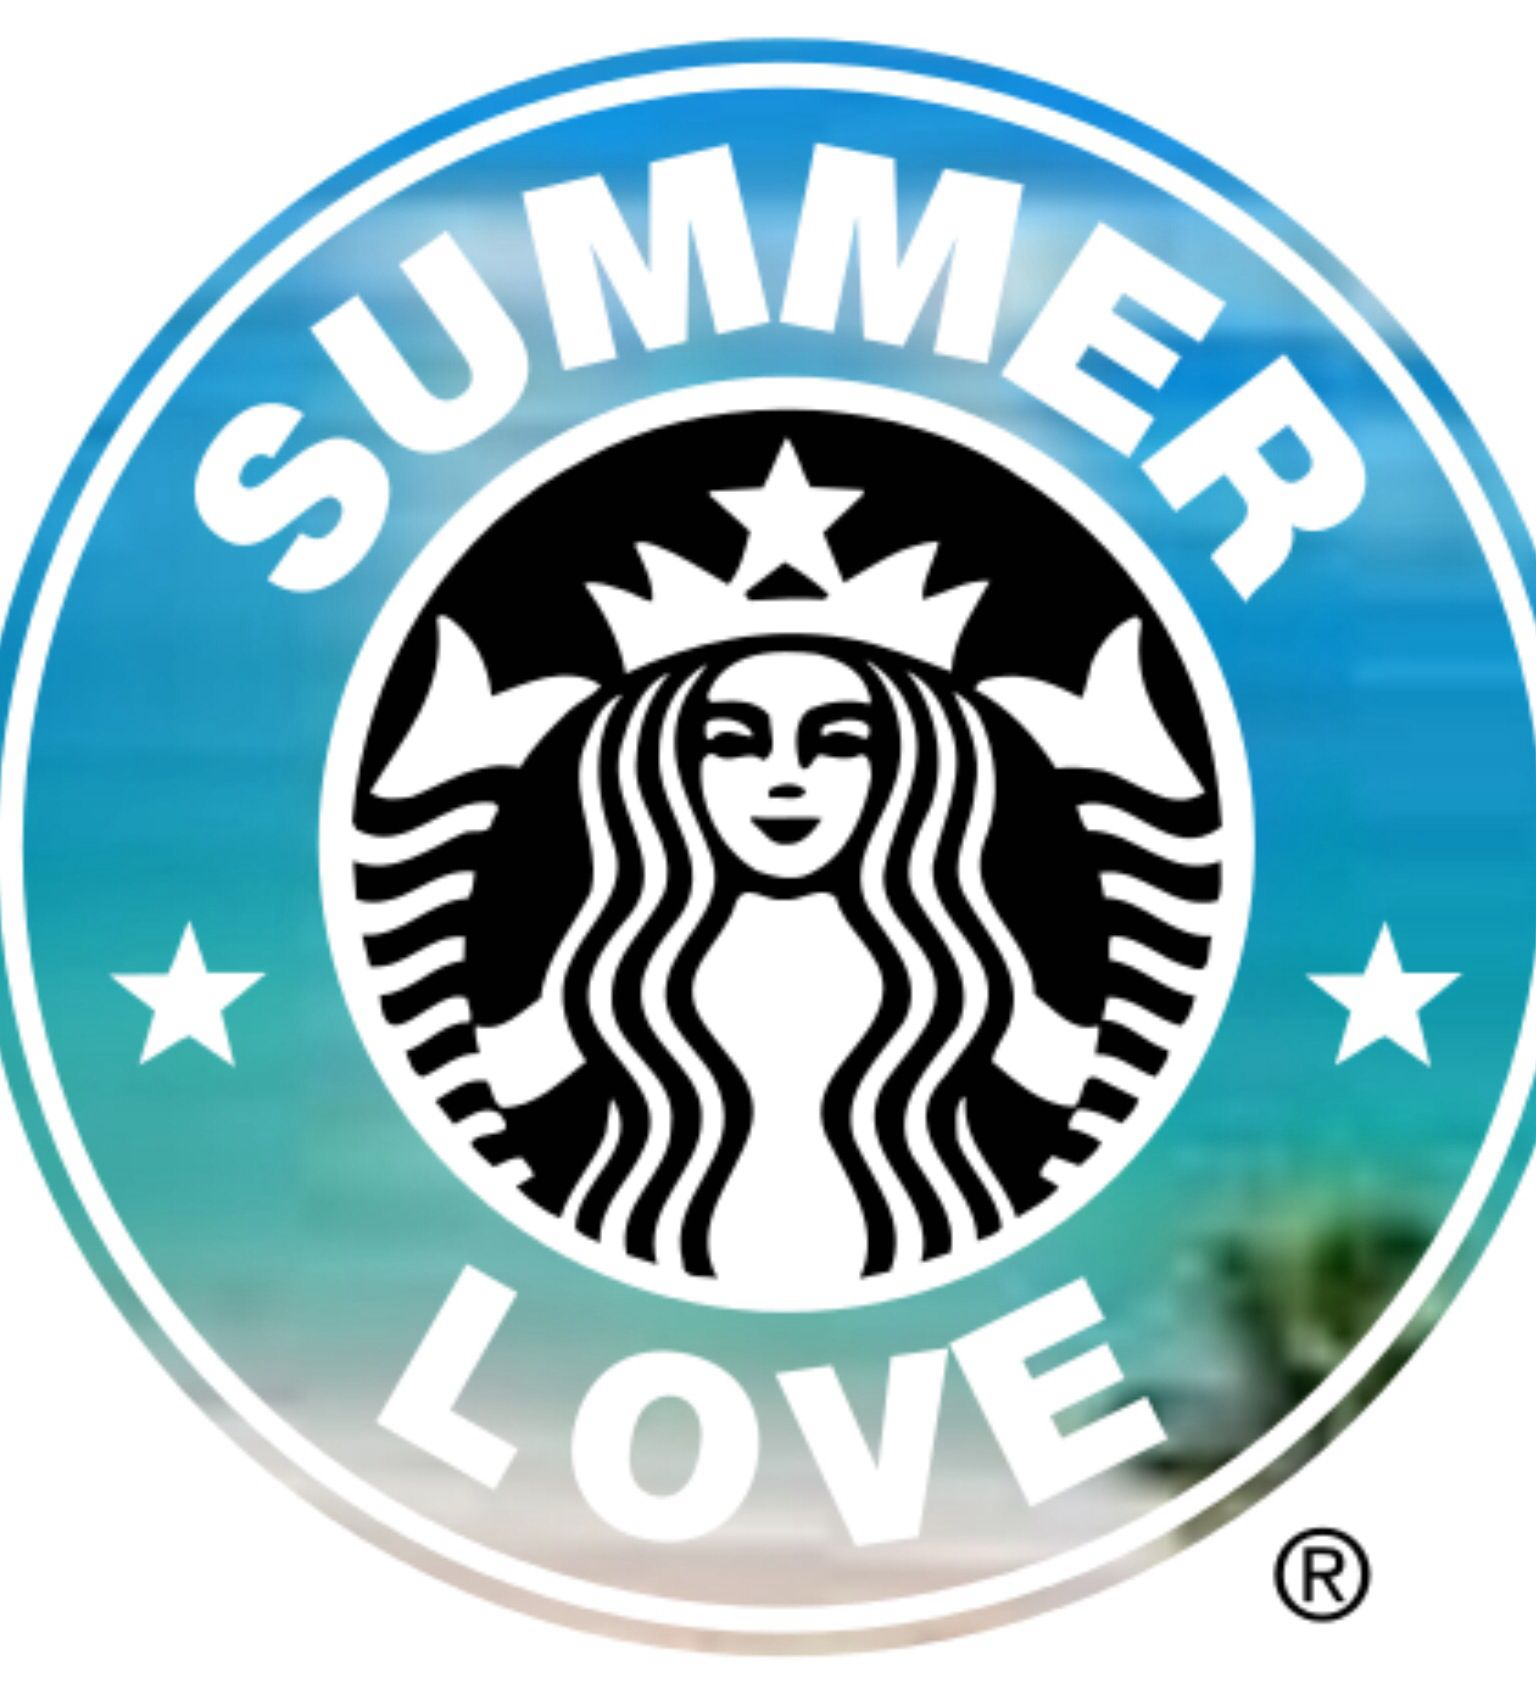 Starbucks Iphone Wallpaper: Pin By Didi Collins On Starbucks ™�